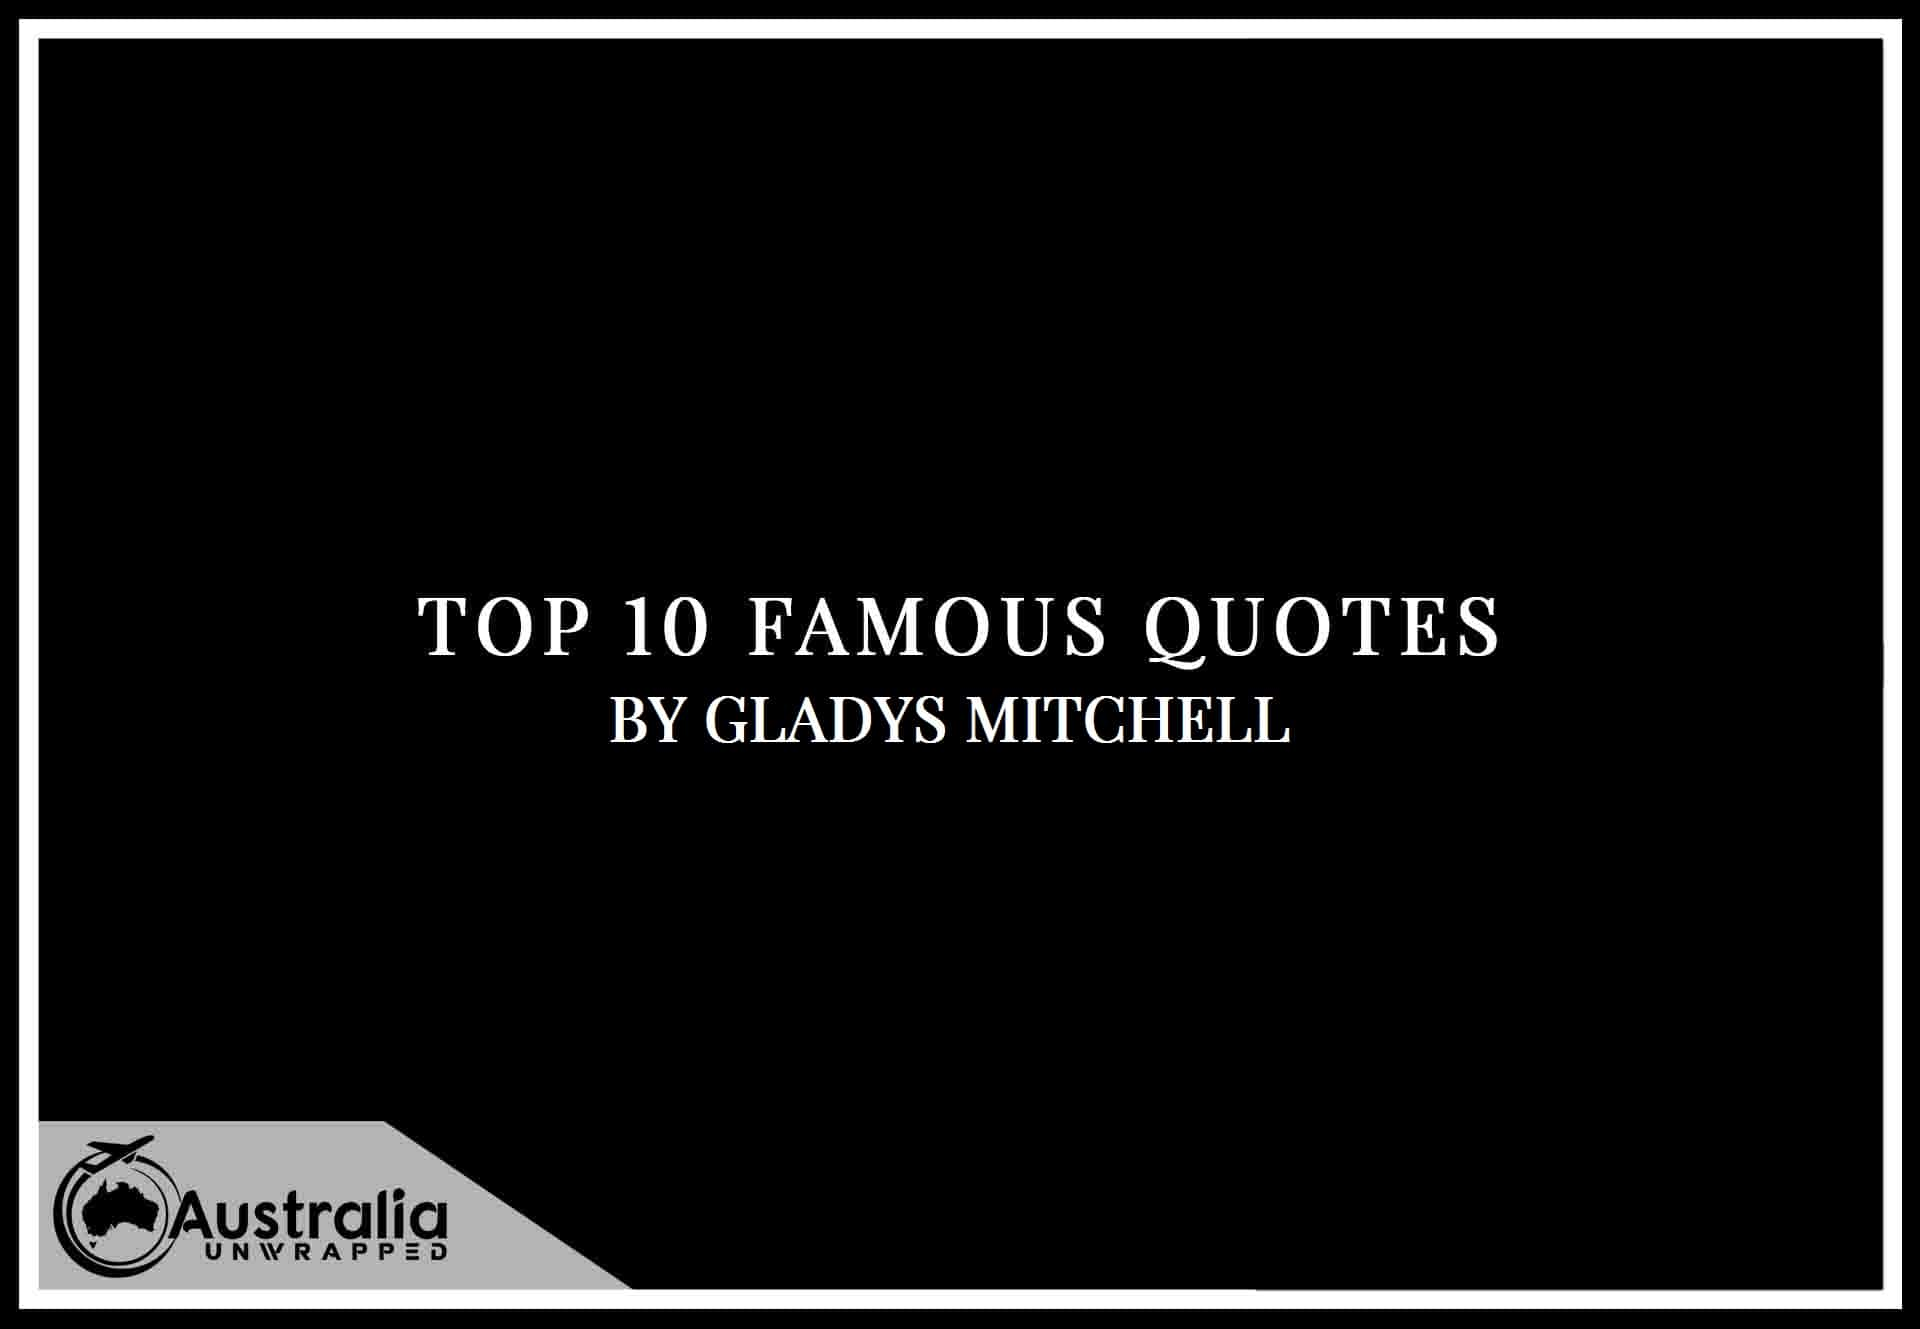 Gladys Mitchell's Top 10 Popular and Famous Quotes